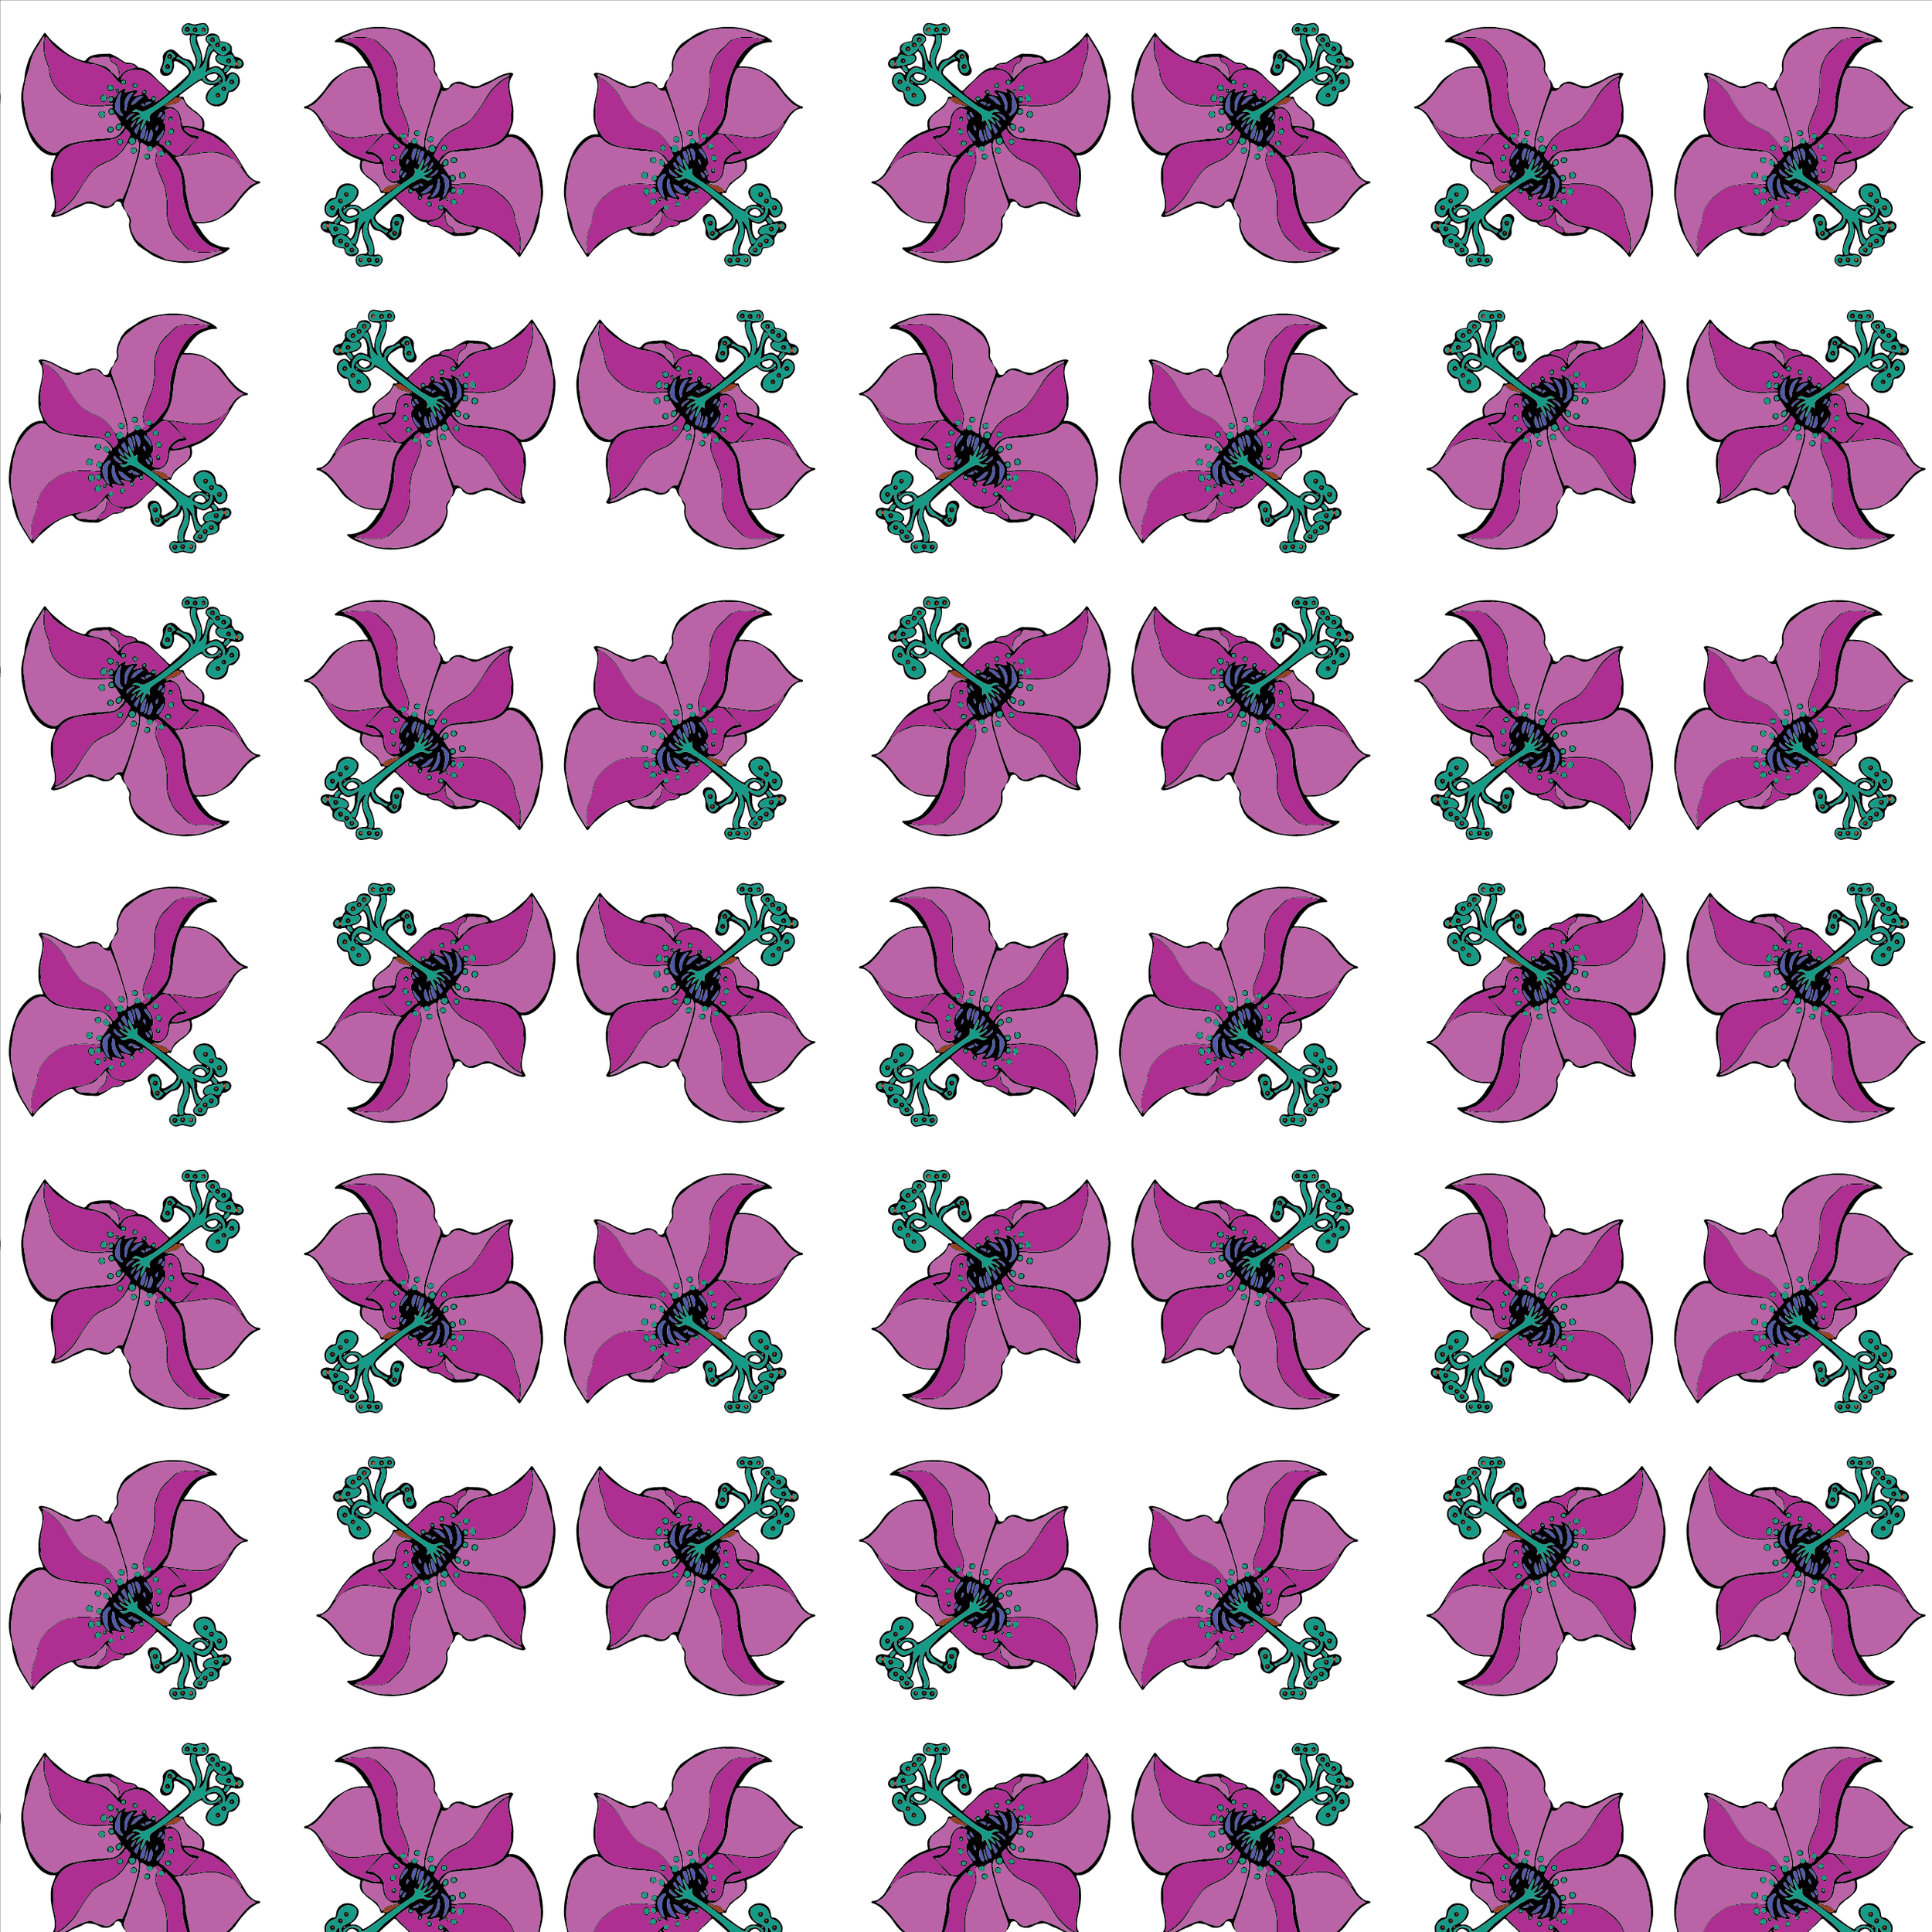 Surface Design Traditional Flower_Purple no leaves.png